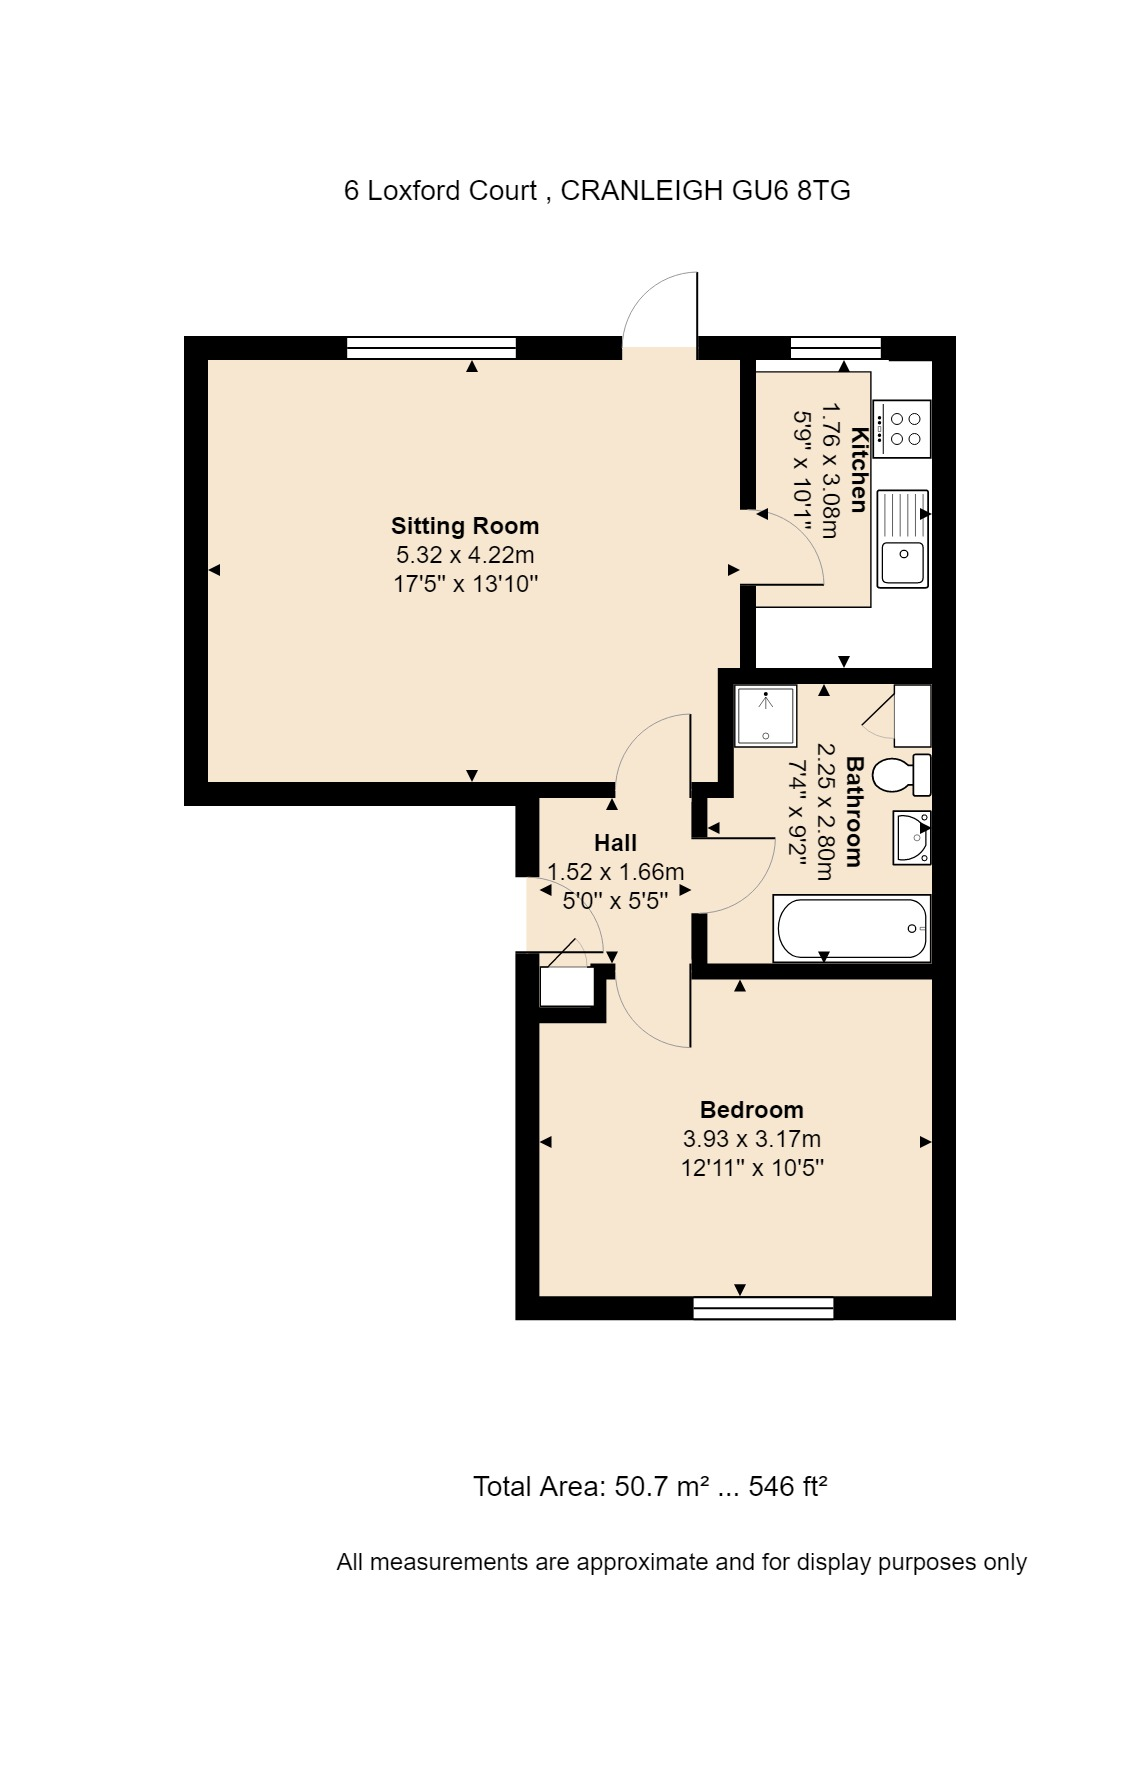 6 Loxford Court Floorplan